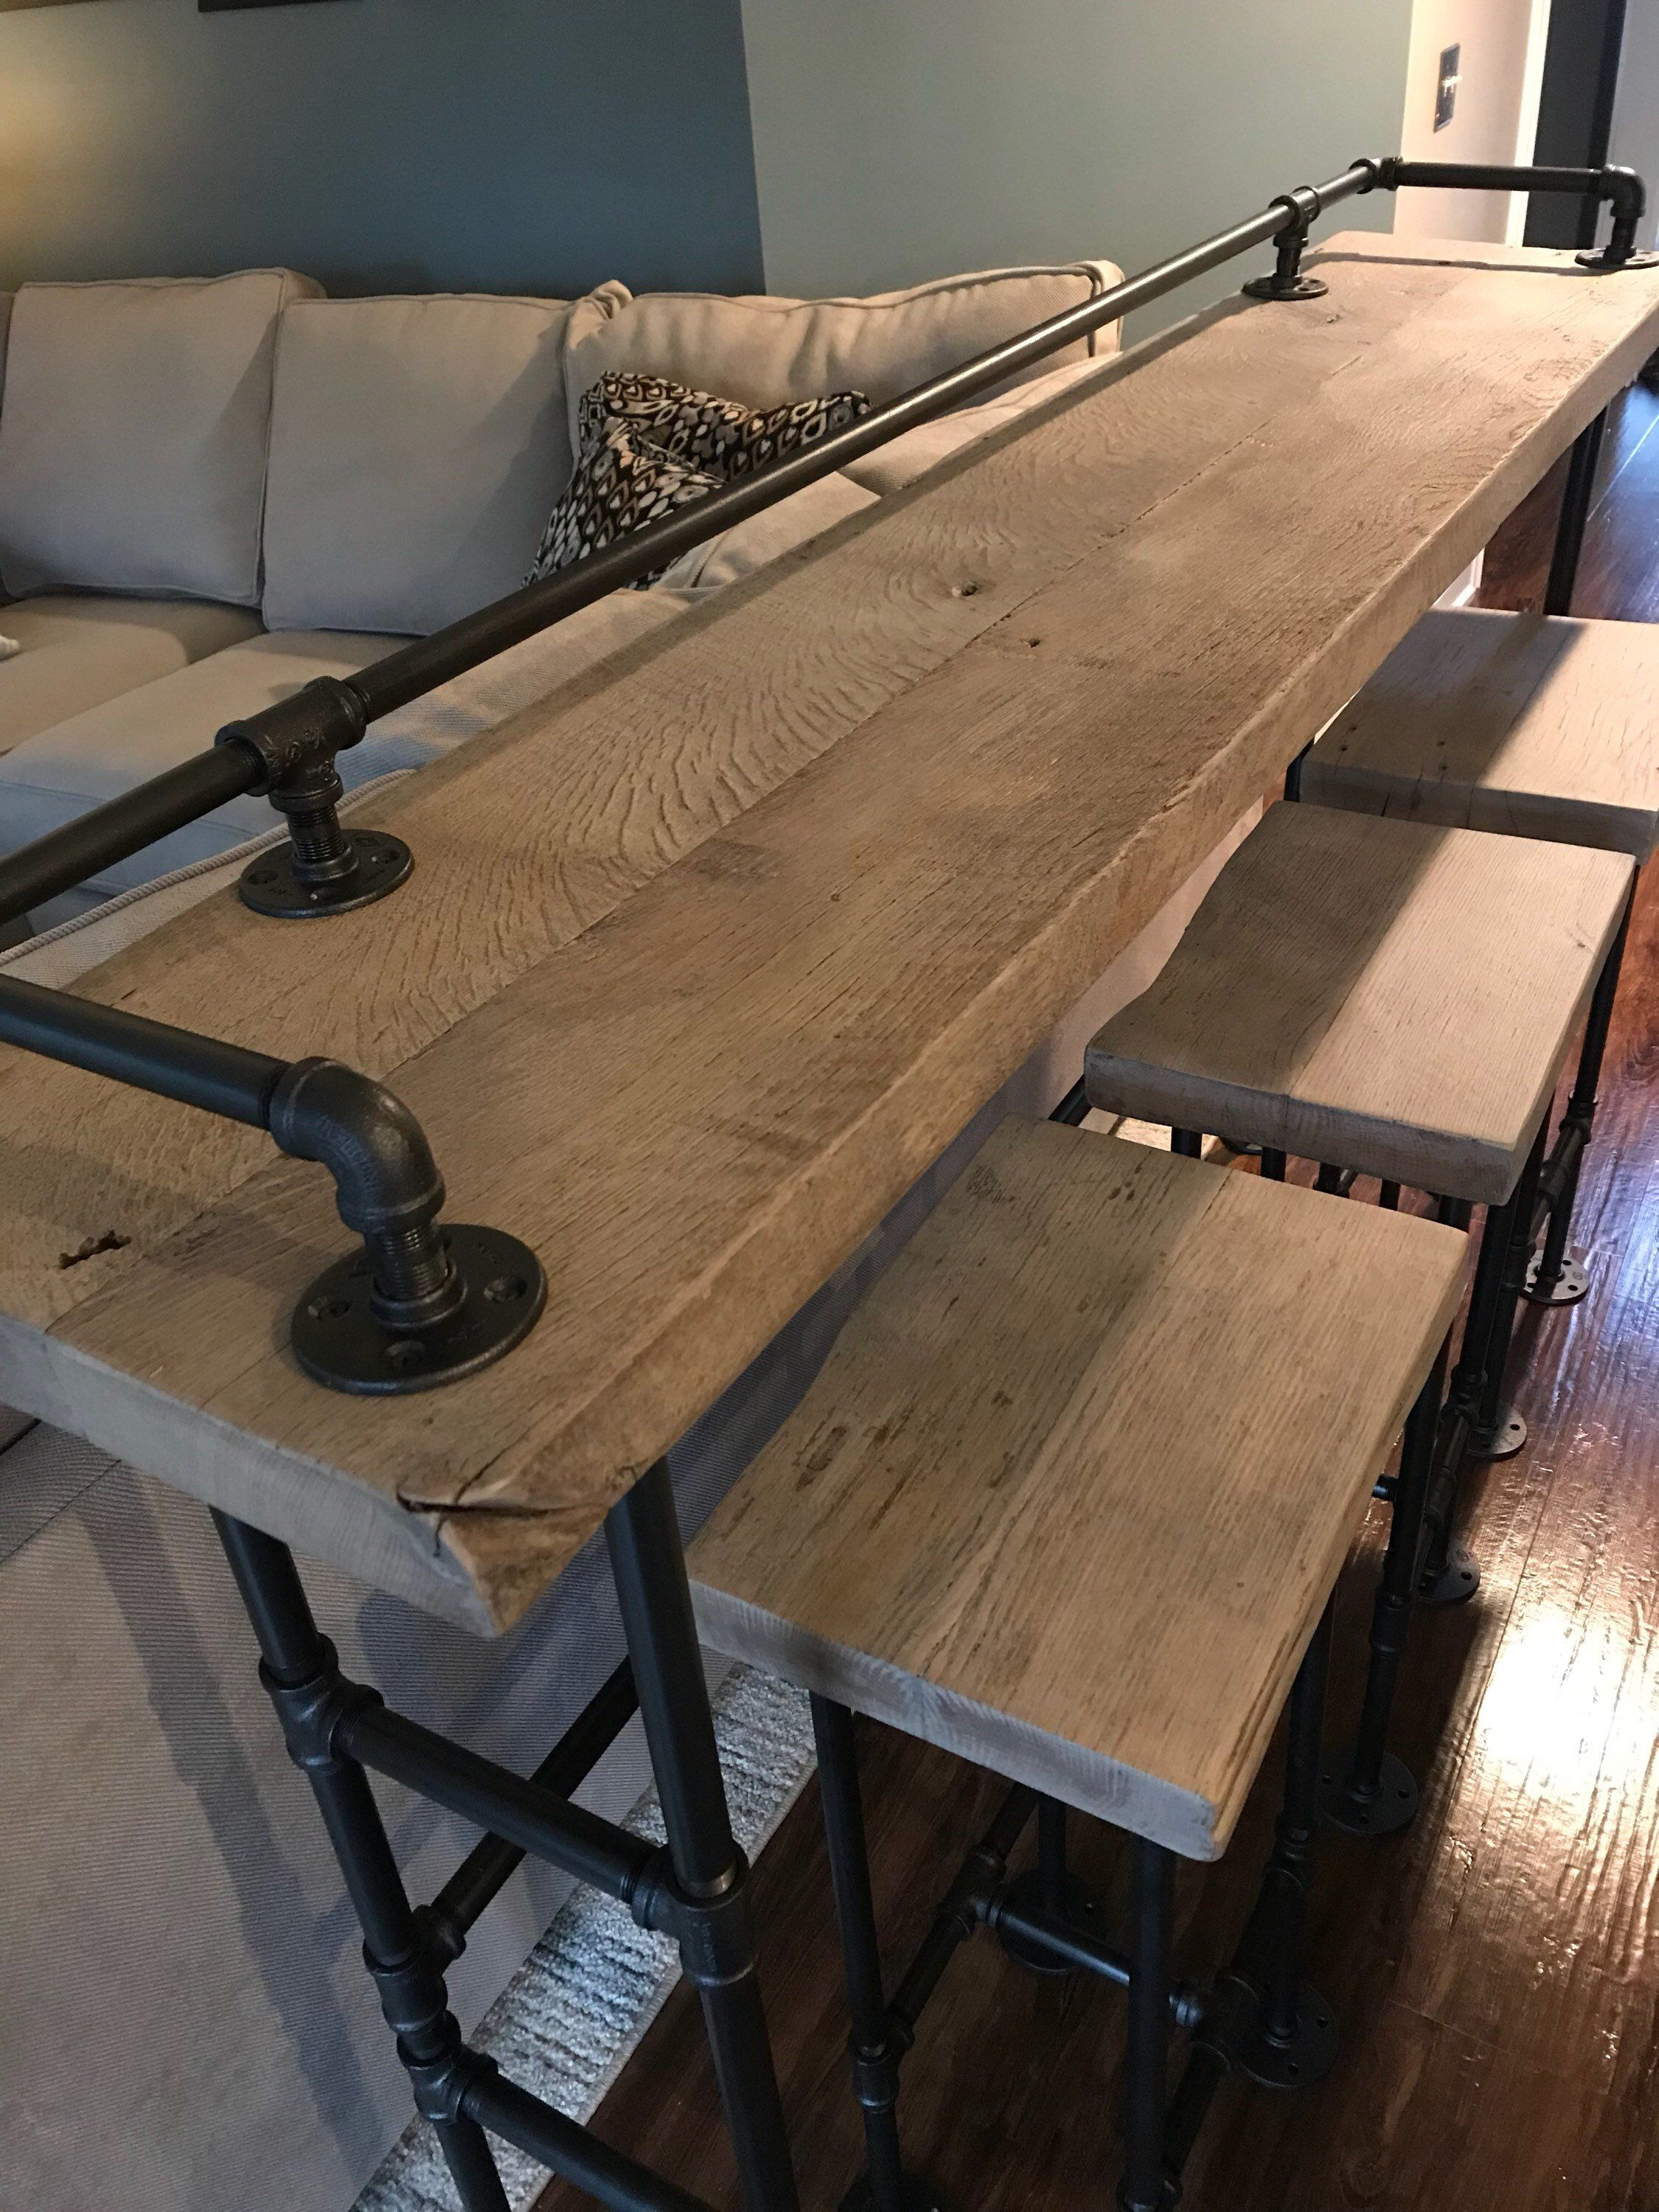 Rustic Gray Reclaimed Barn Wood Sofa Bar Table 7 Foot By Caseconcepts2000 On Etsy Https